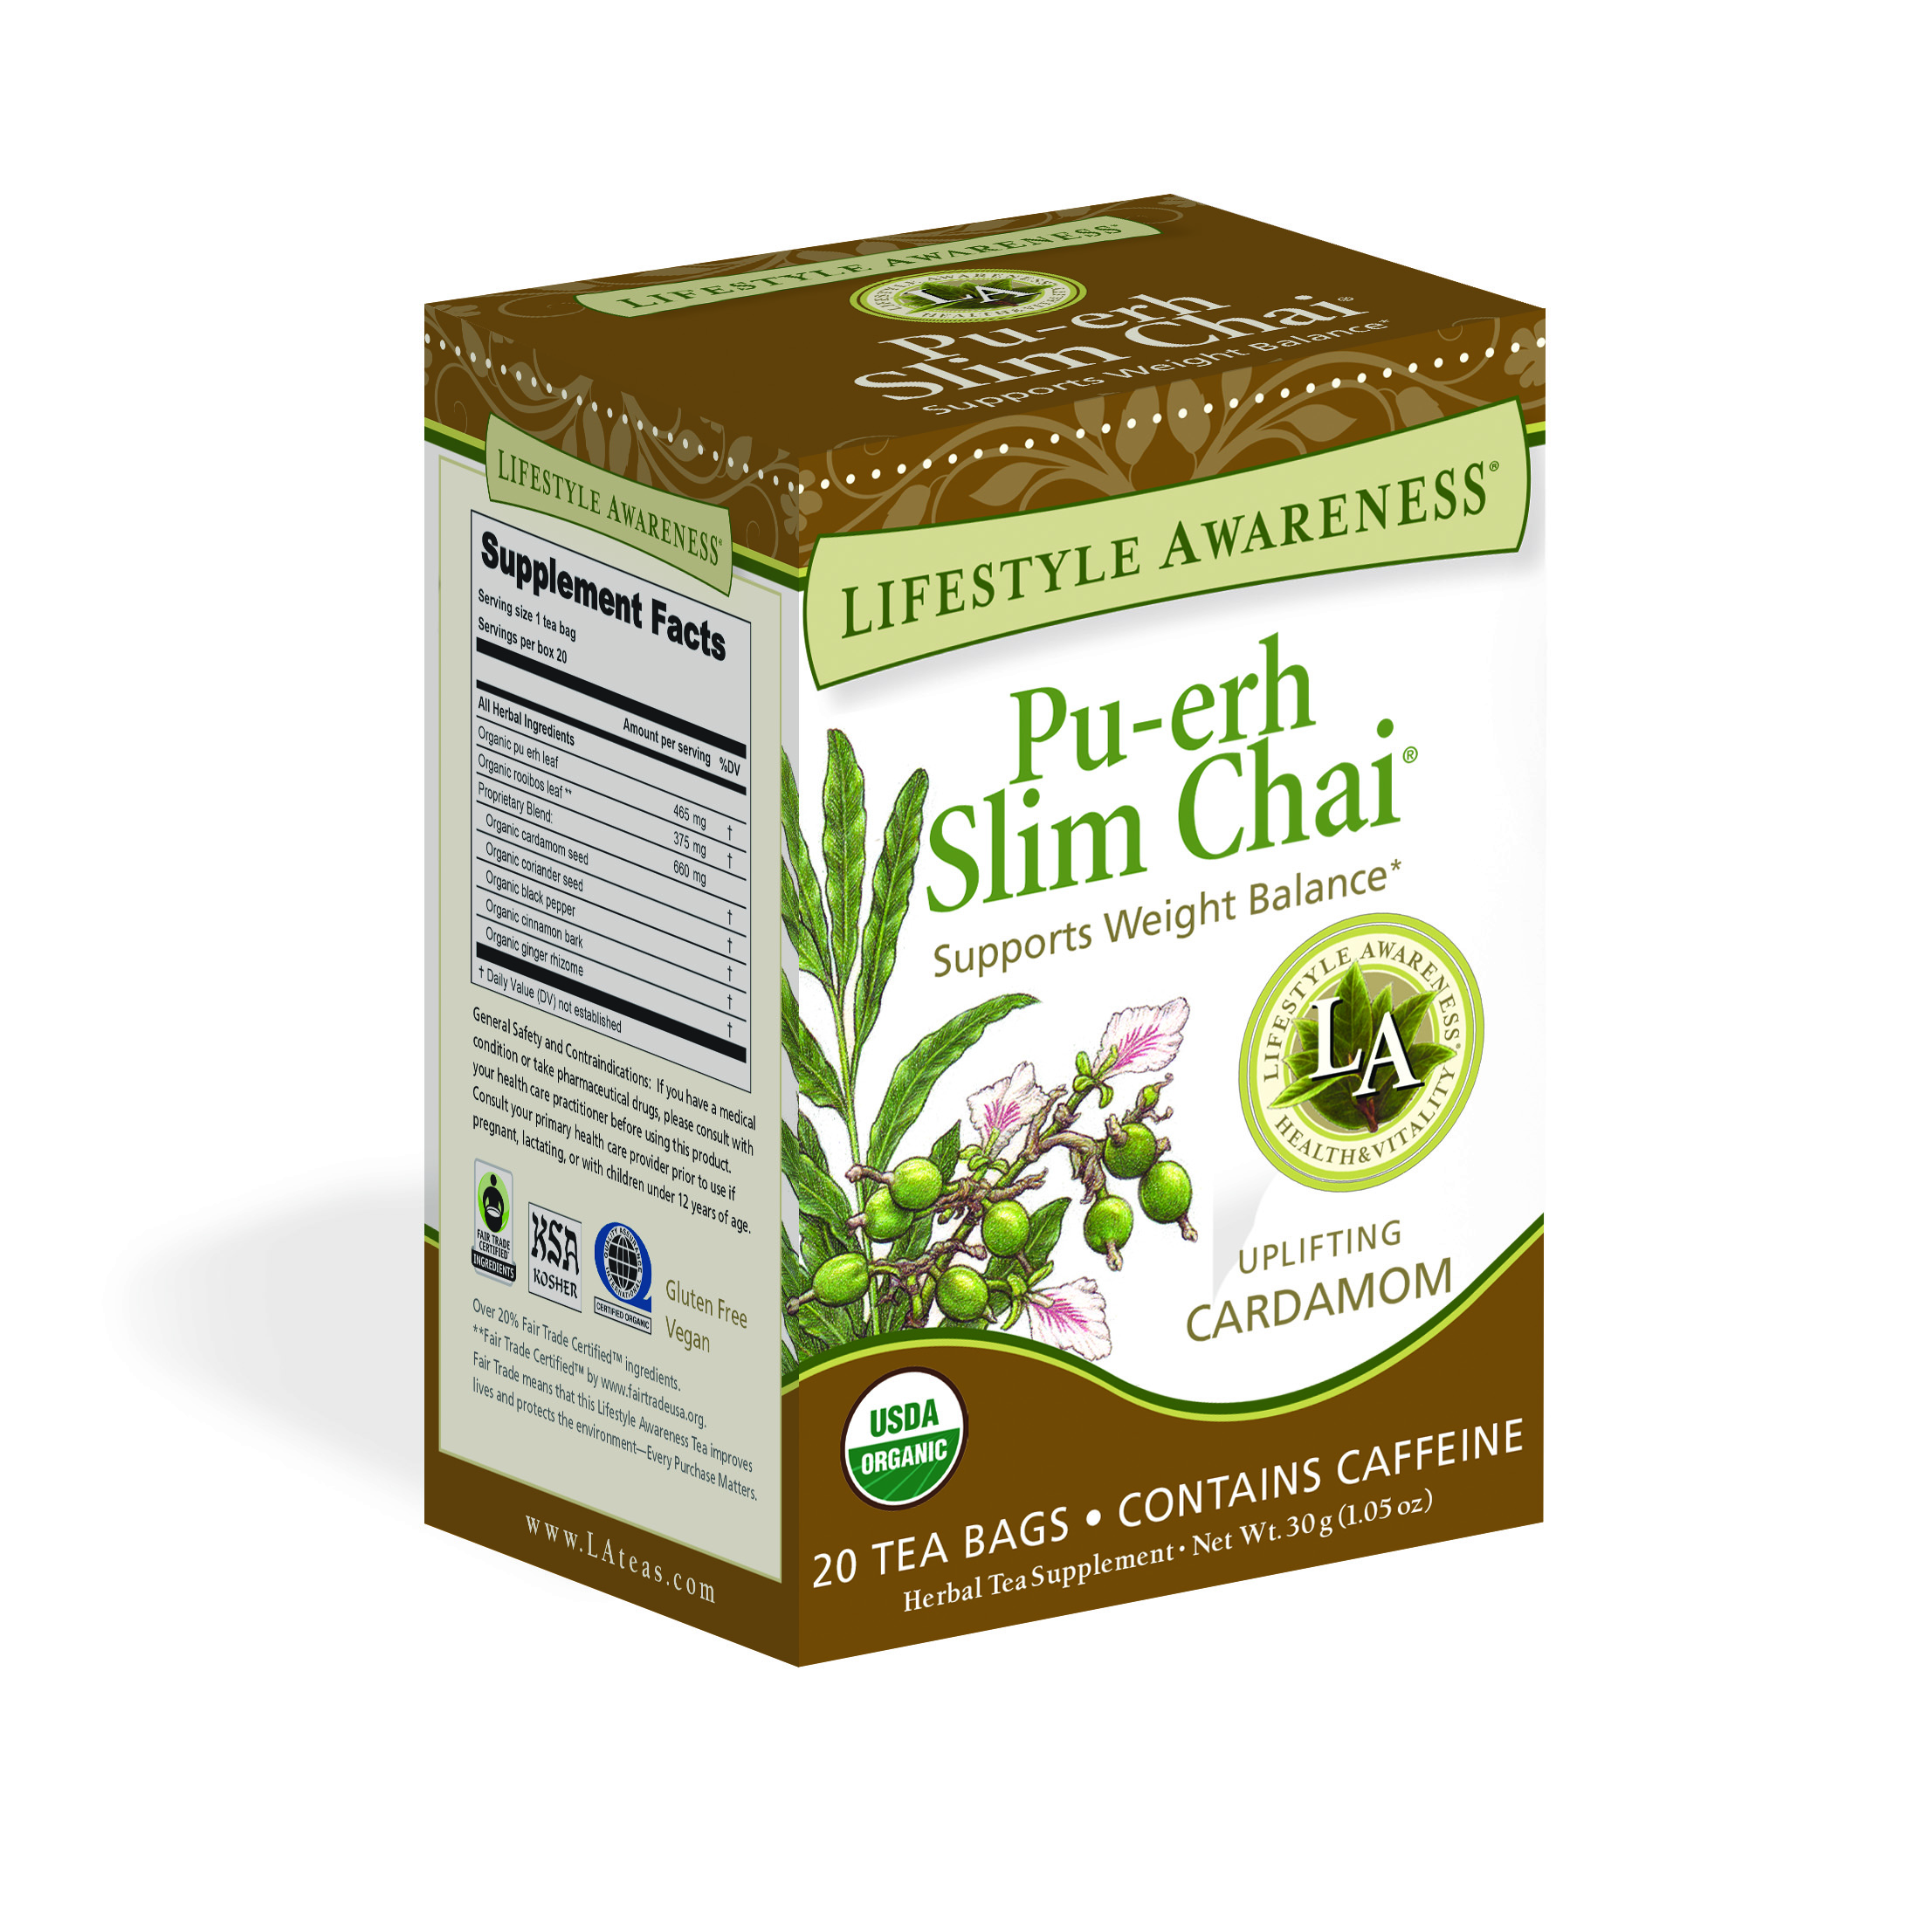 Lifestyle Awareness Pu-erh Slim Chai Tea with Uplifting Cardamom, Contains Caffeine, 20 Tea Bags, Pack of 6